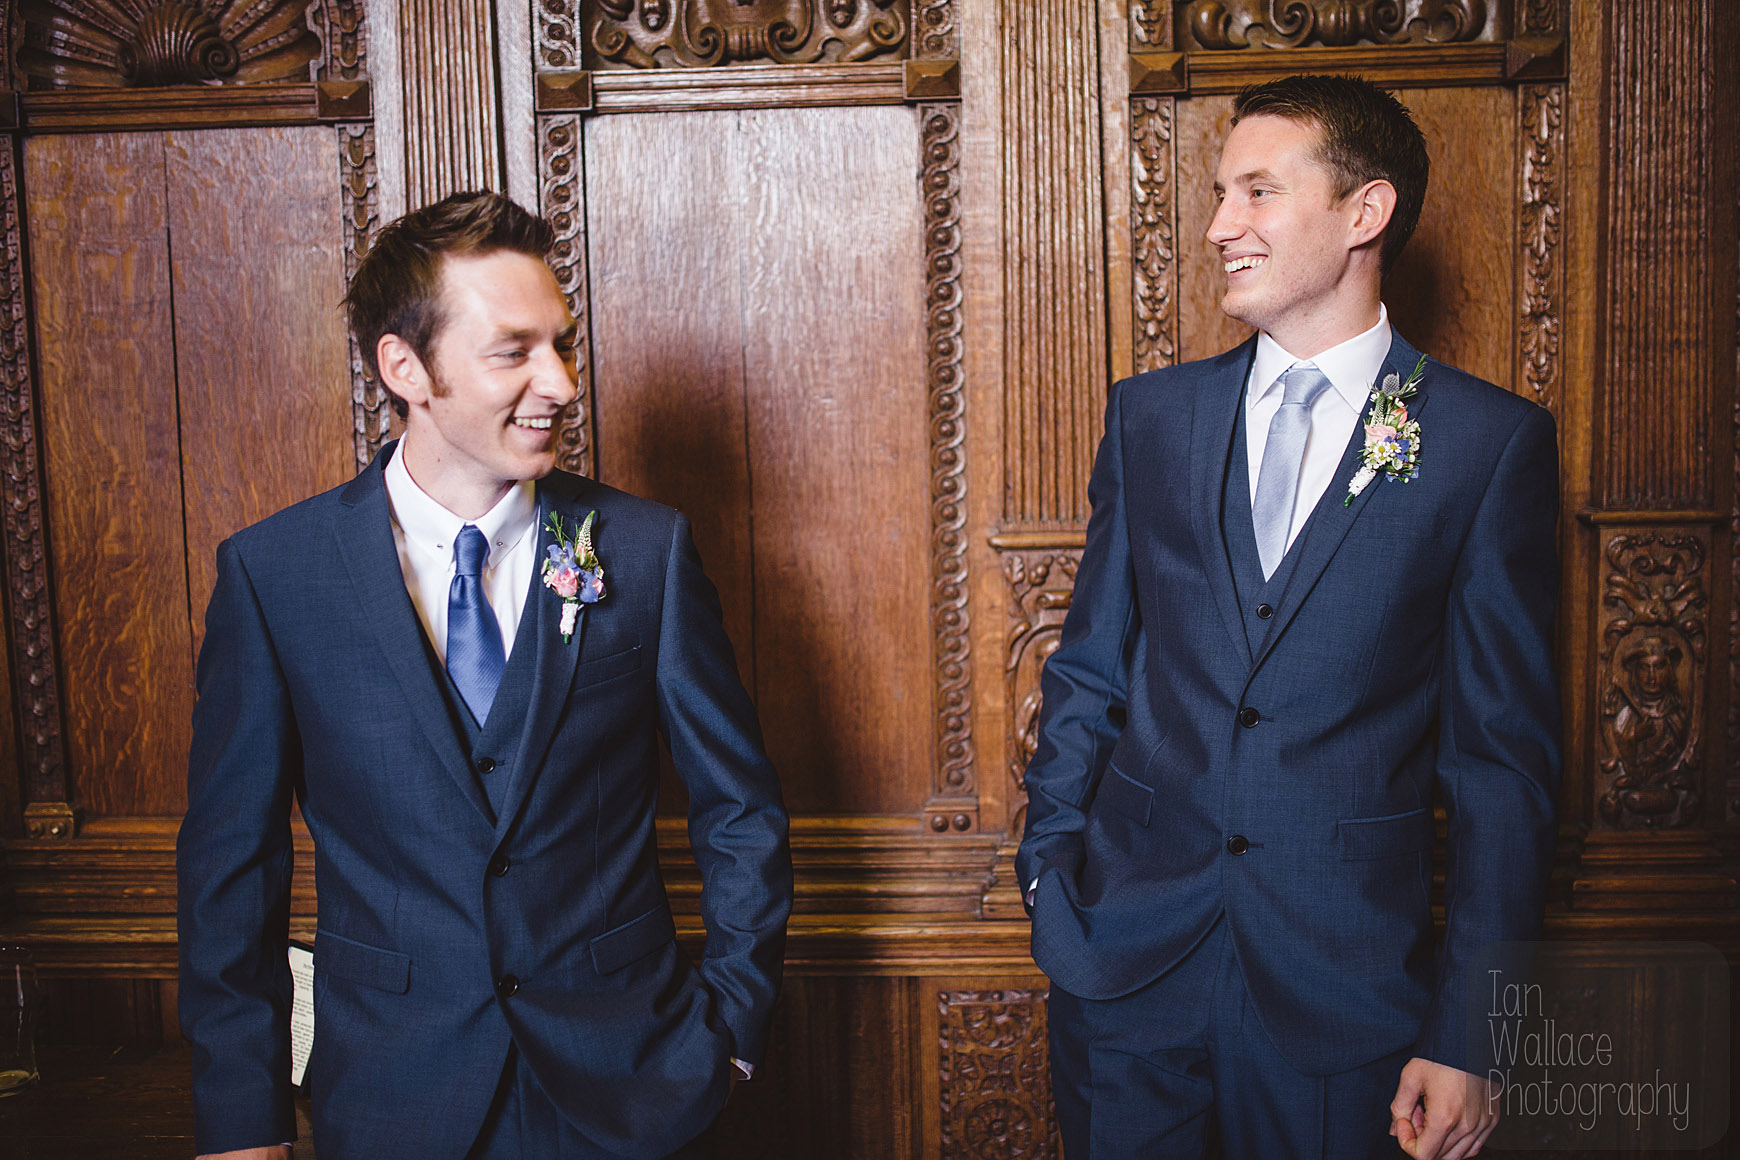 Groom and best man chatting and laughing in the lead up to the ceremony